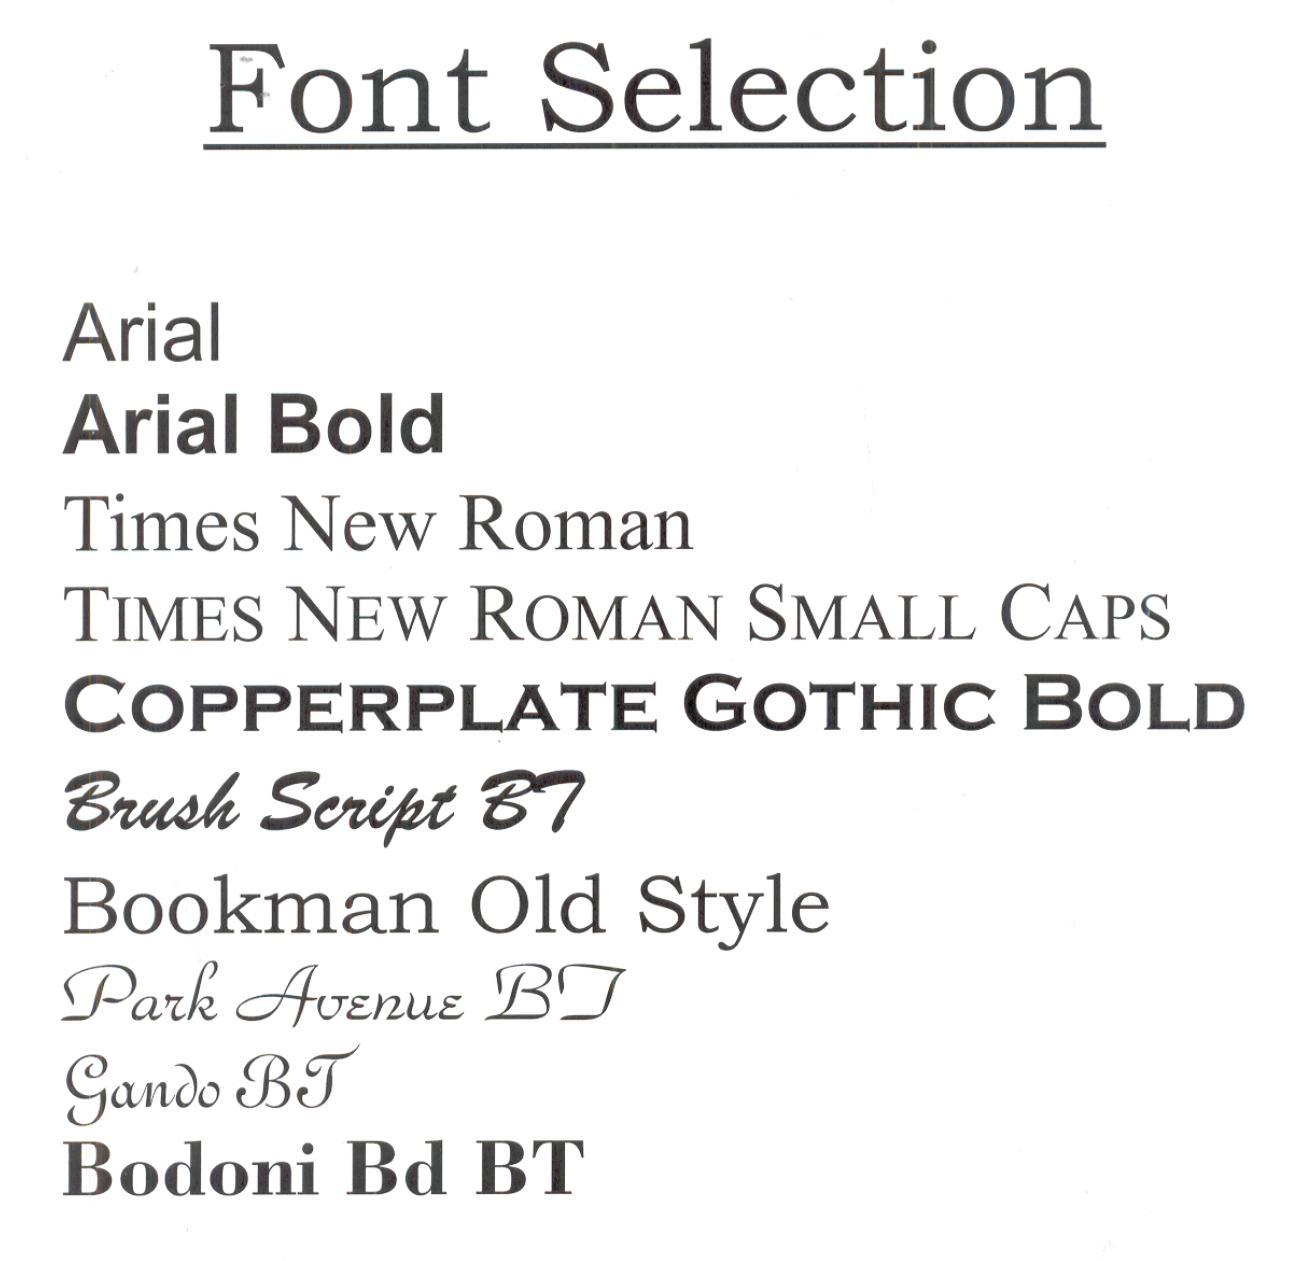 fonts.jpg